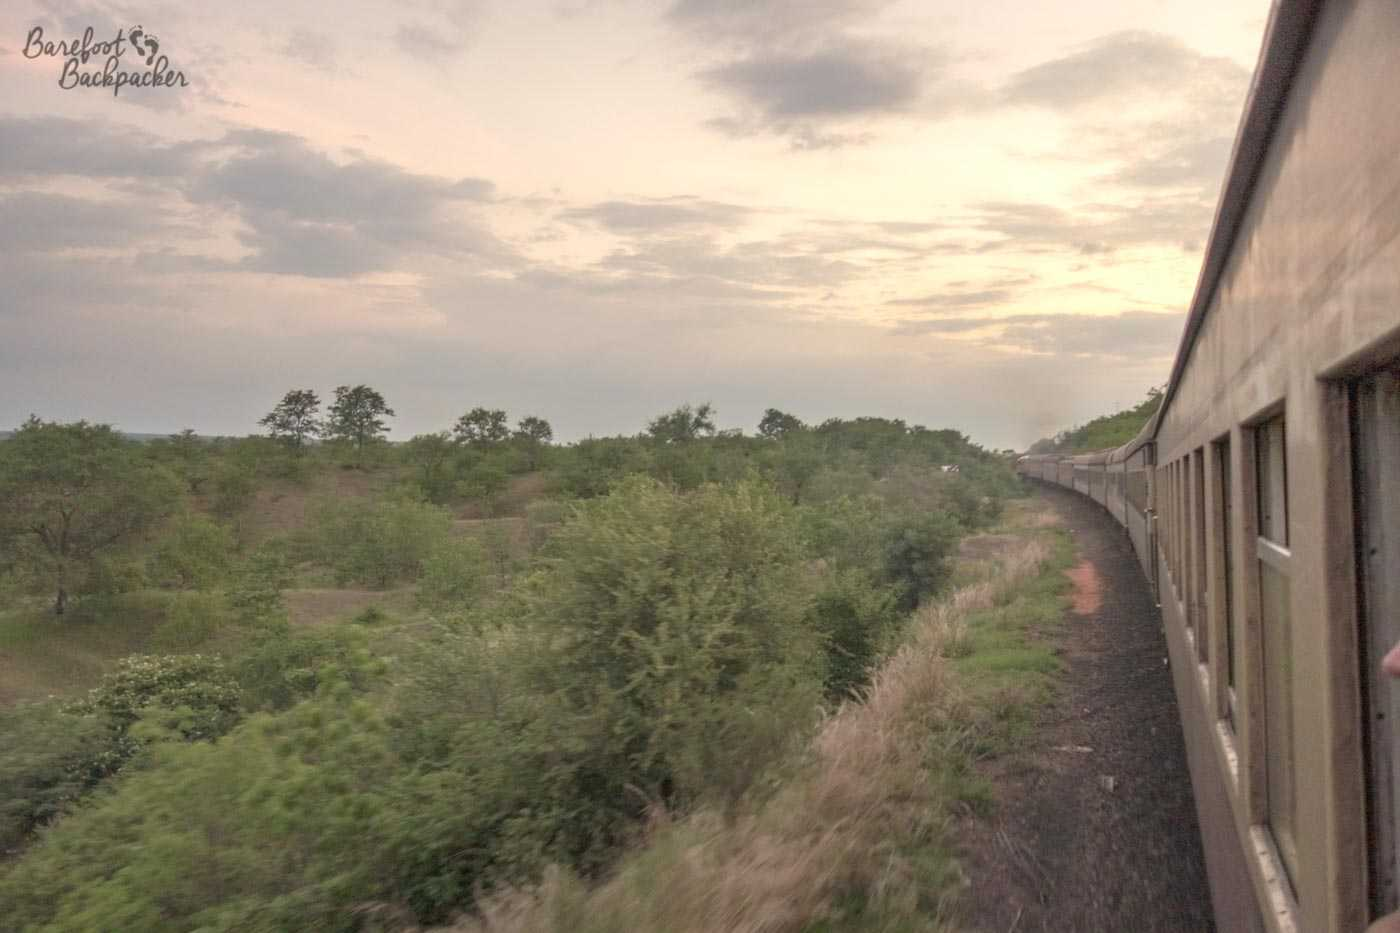 The train that runs between Victoria Falls and Bulawayo, not long after setting out, going through the shrubland of northern Zimbabwe.